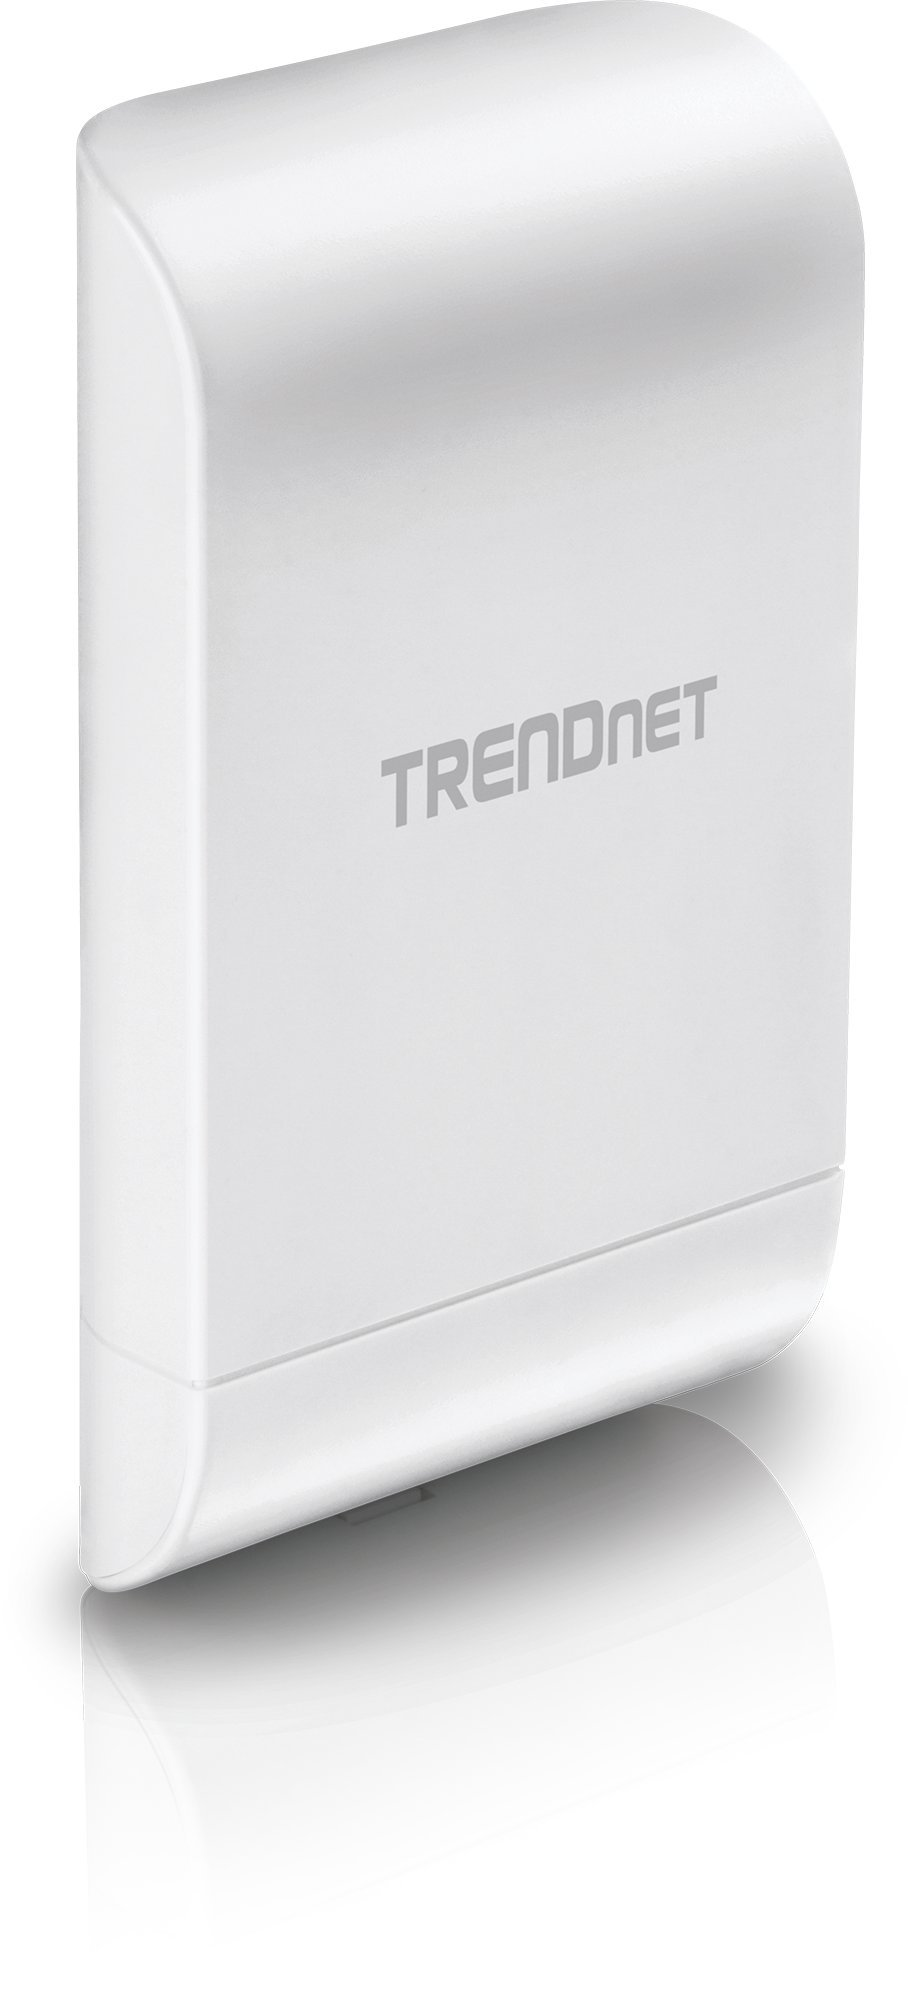 TRENDnet 10dBi Wireless N300 Outdoor PoE Access Point, Point-to-Point, Multiple SSID, AP, WDS, Client Bridge, WISP, IPX6 Rated Housing, TEW-740APBO